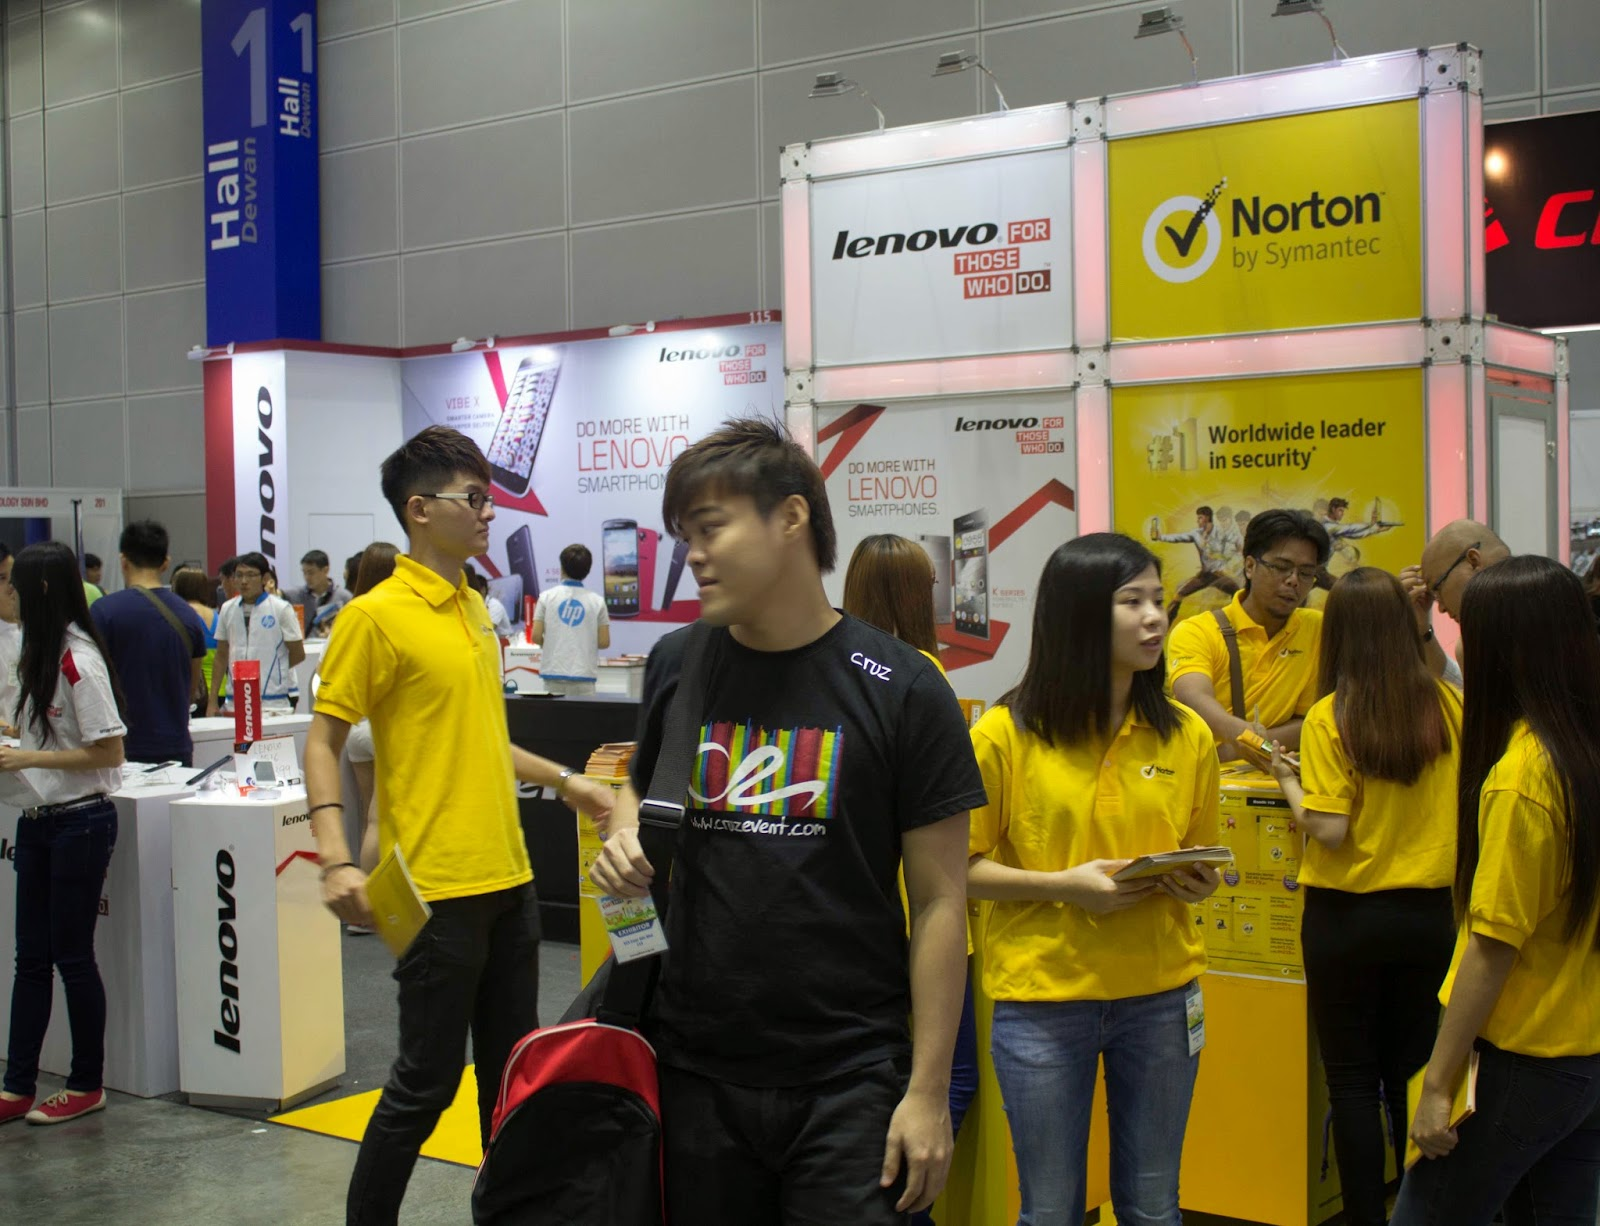 Coverage of PIKOM PC Fair 2014 @ Kuala Lumpur Convention Center 304